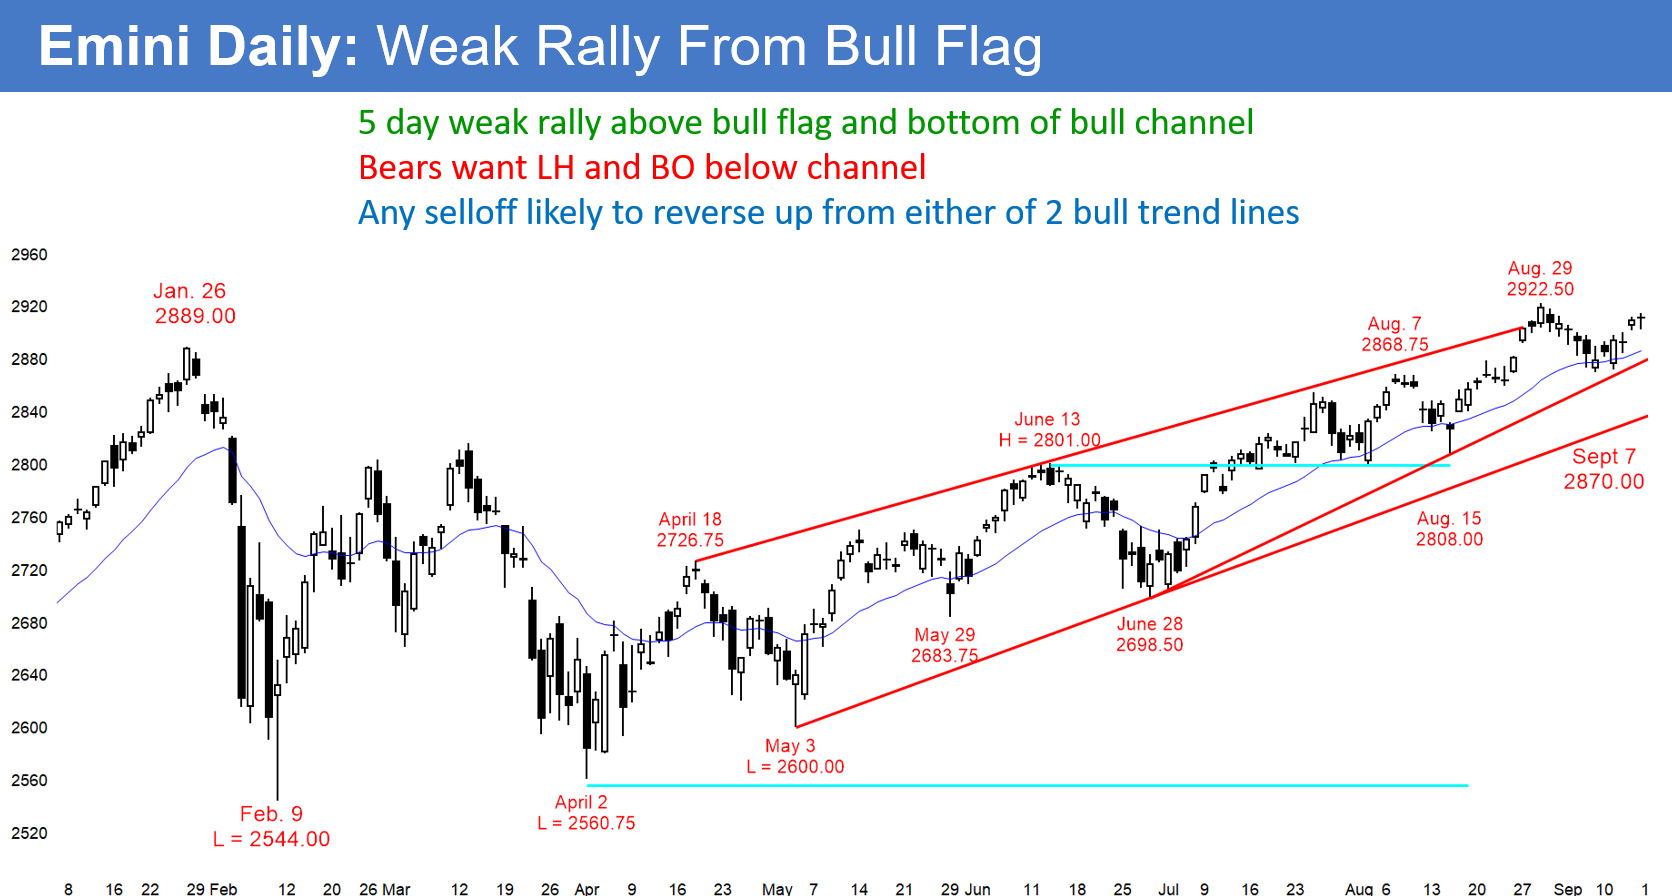 Emini Daily Weak Rally Form Bull Flag